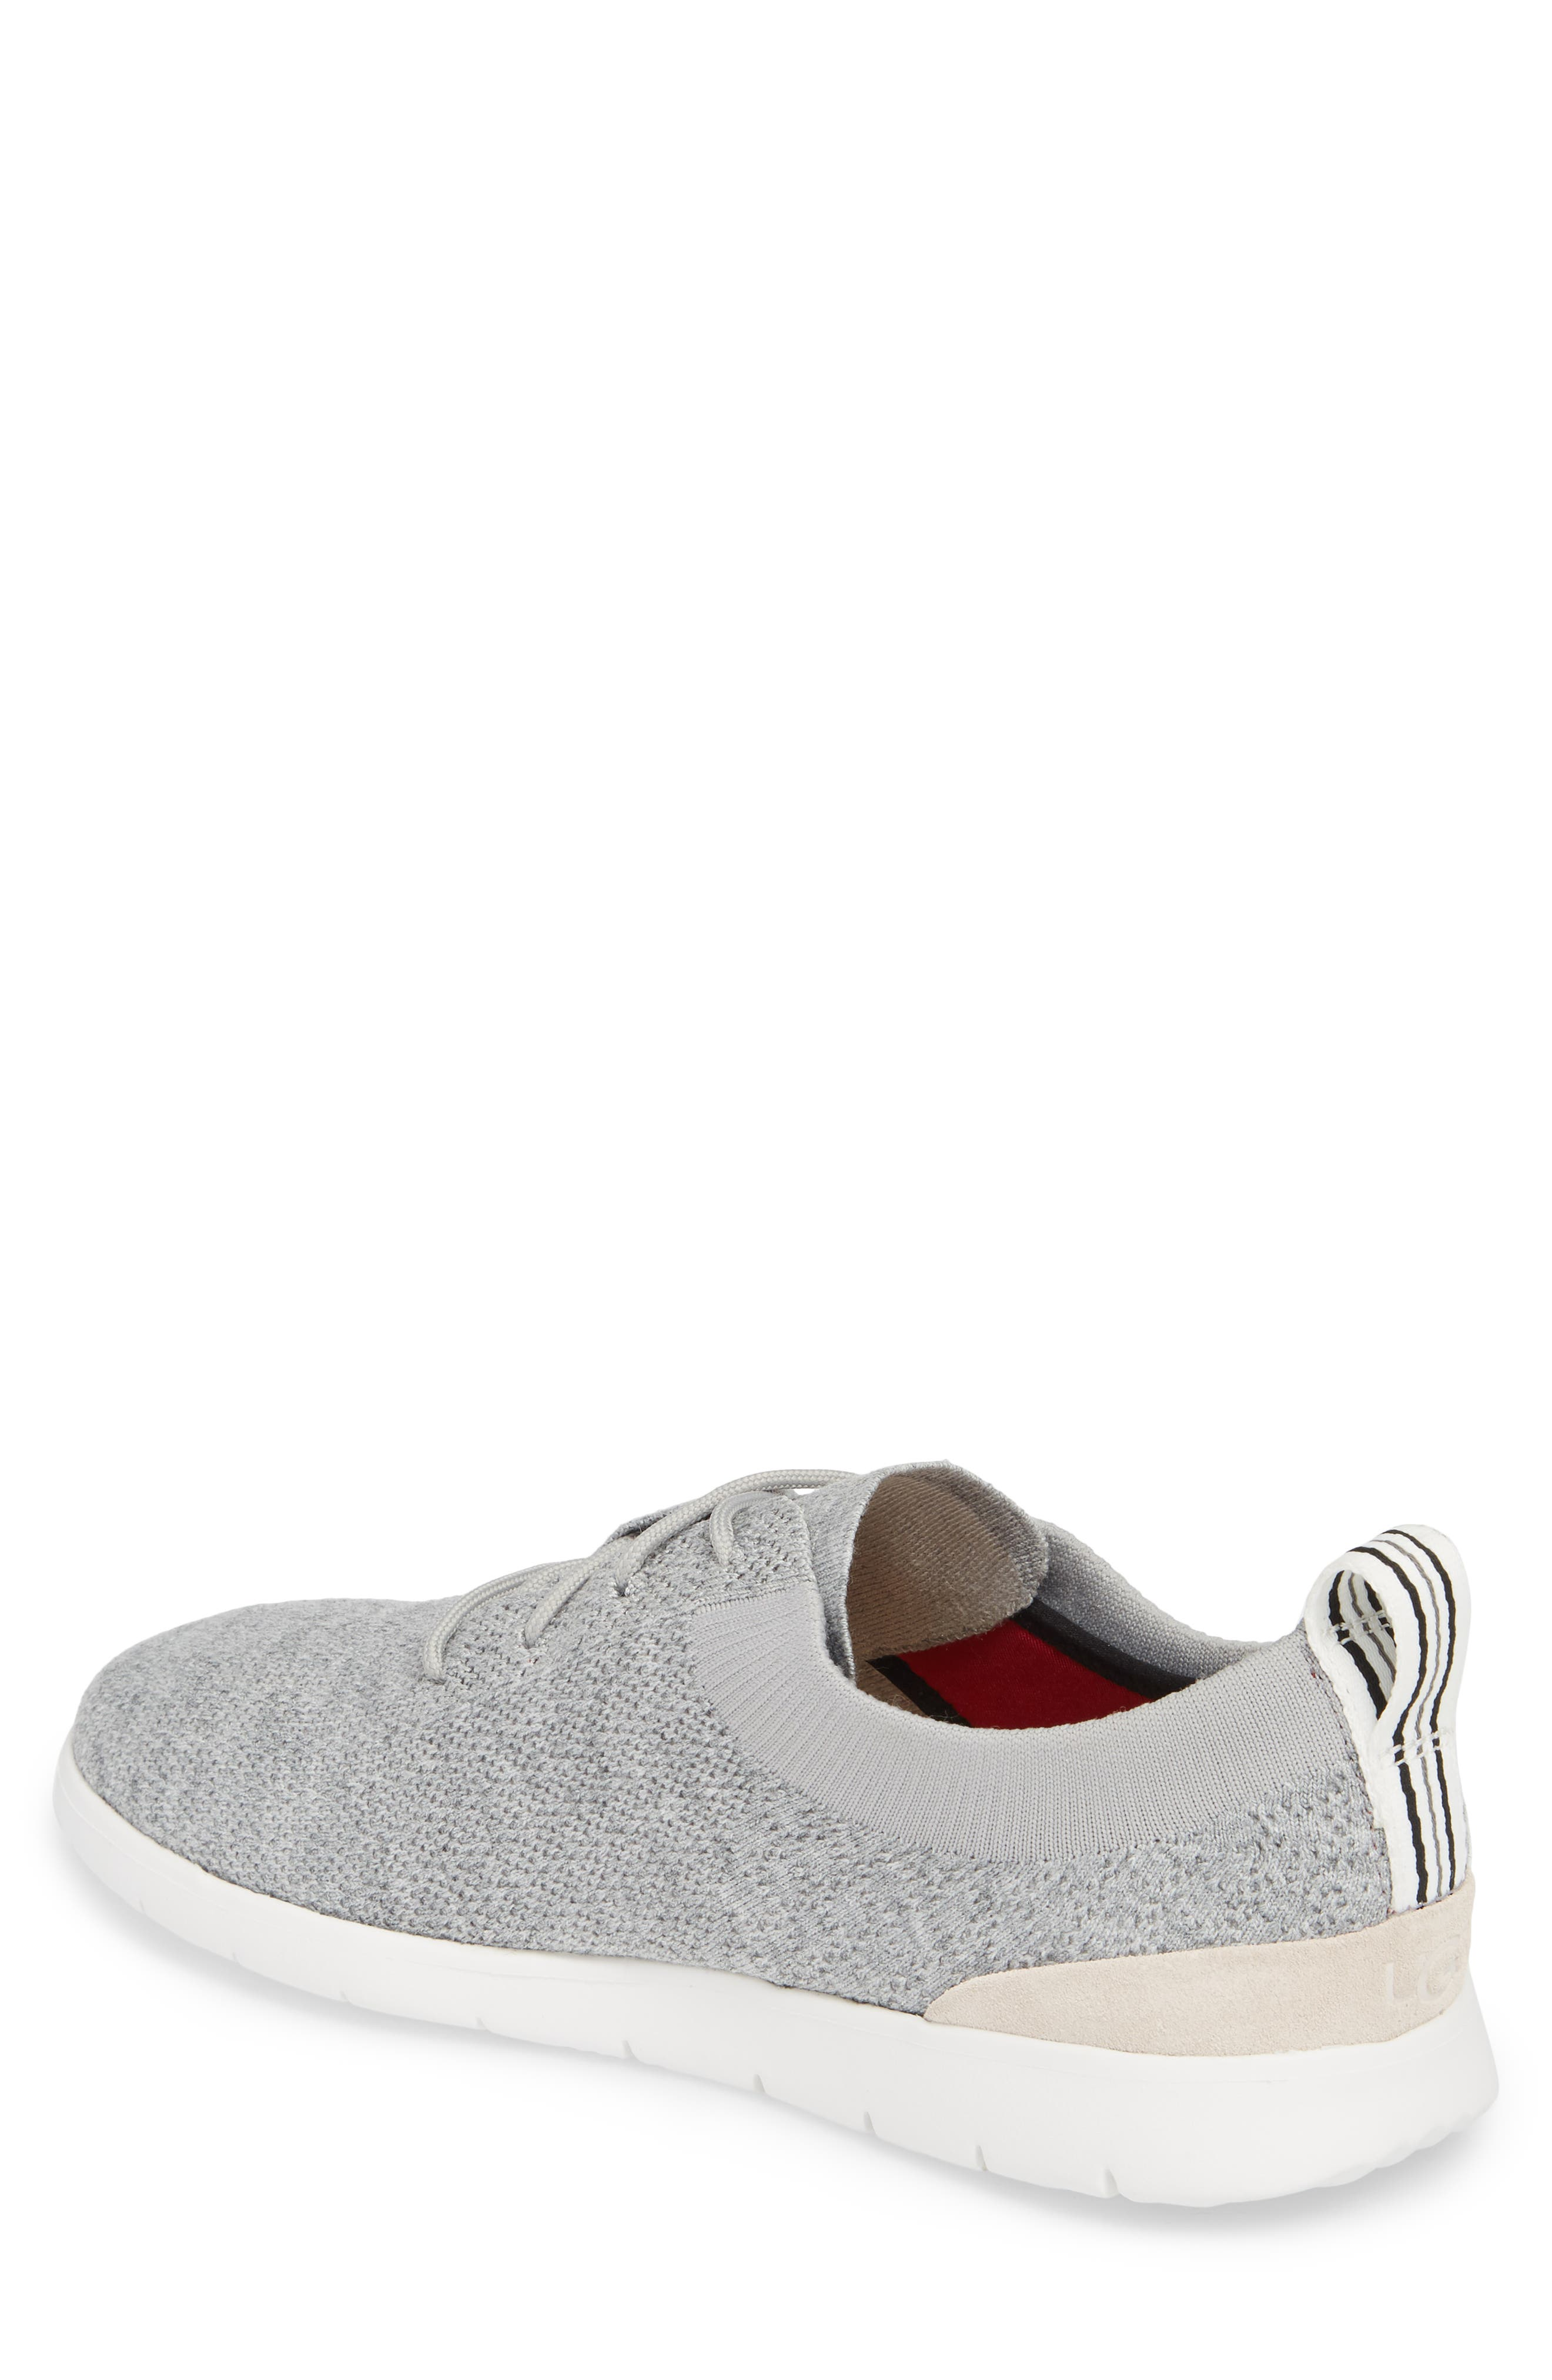 Feli HyperWeave Sneaker,                             Alternate thumbnail 2, color,                             SEAL LEATHER